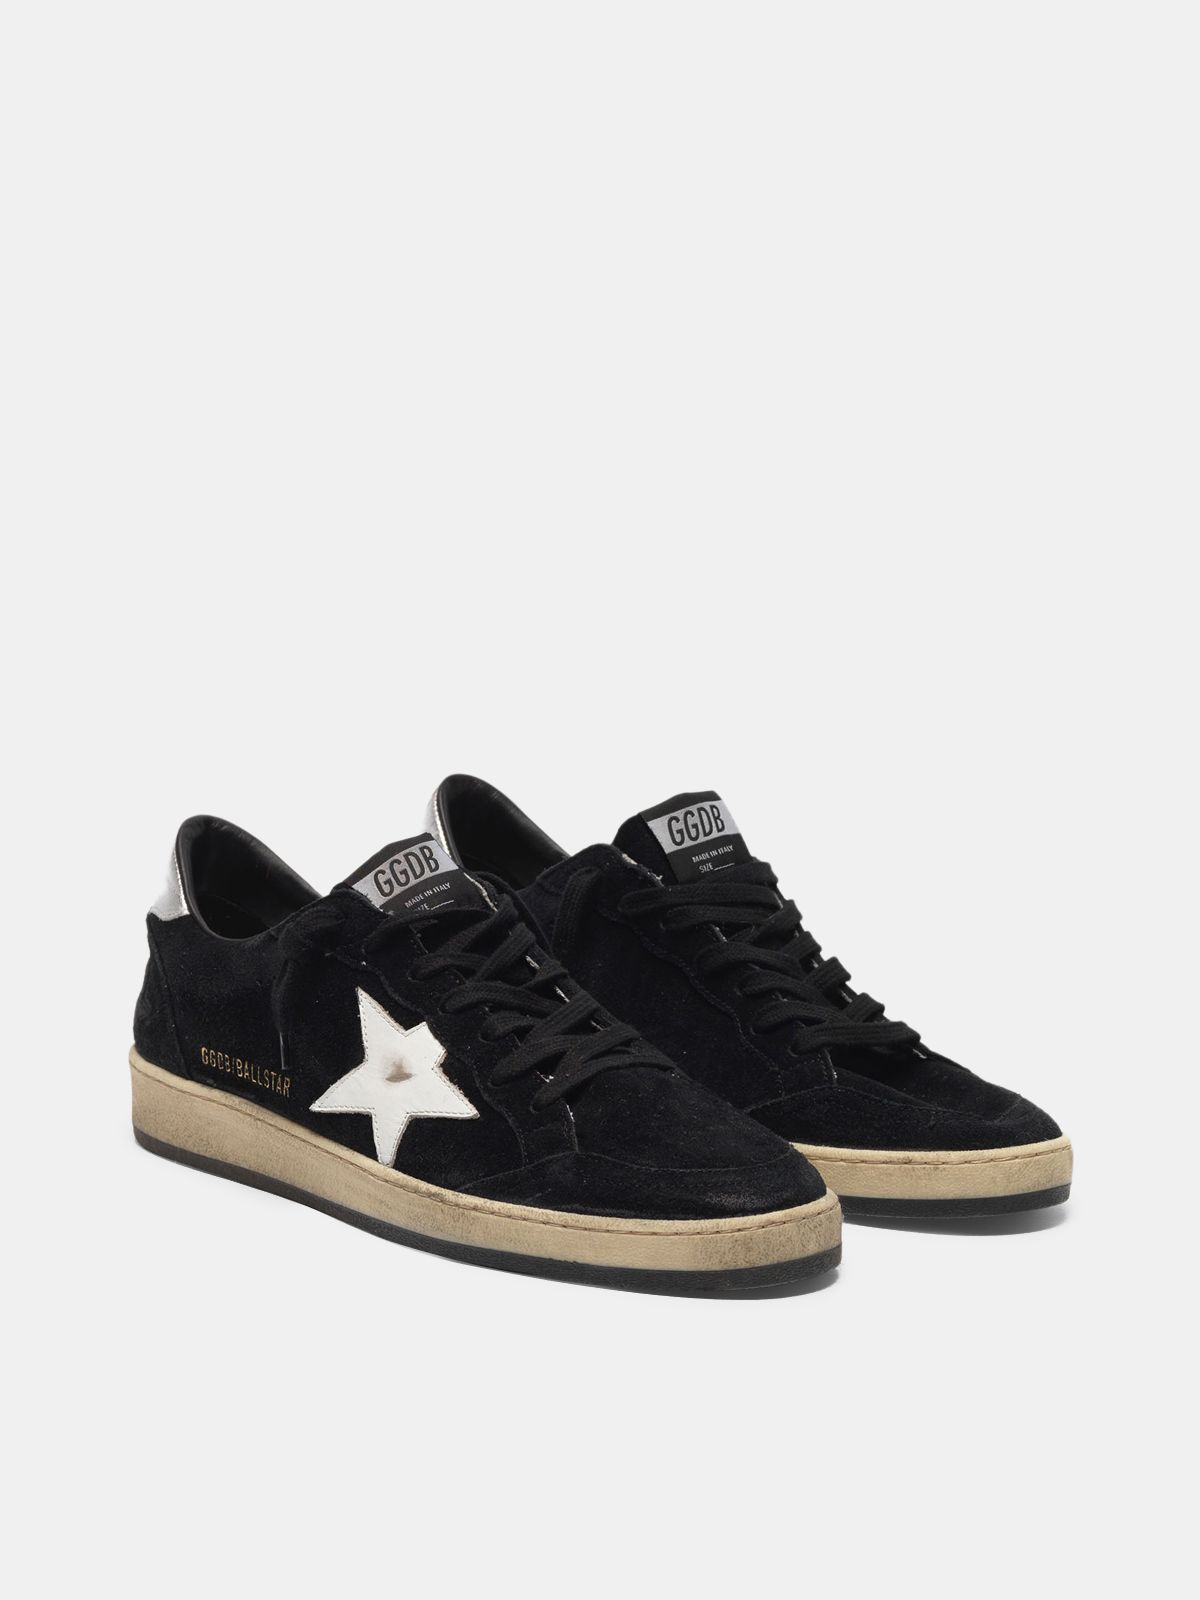 Golden Goose - Ball Star sneakers in suede with contrasting star and metal heel tab in